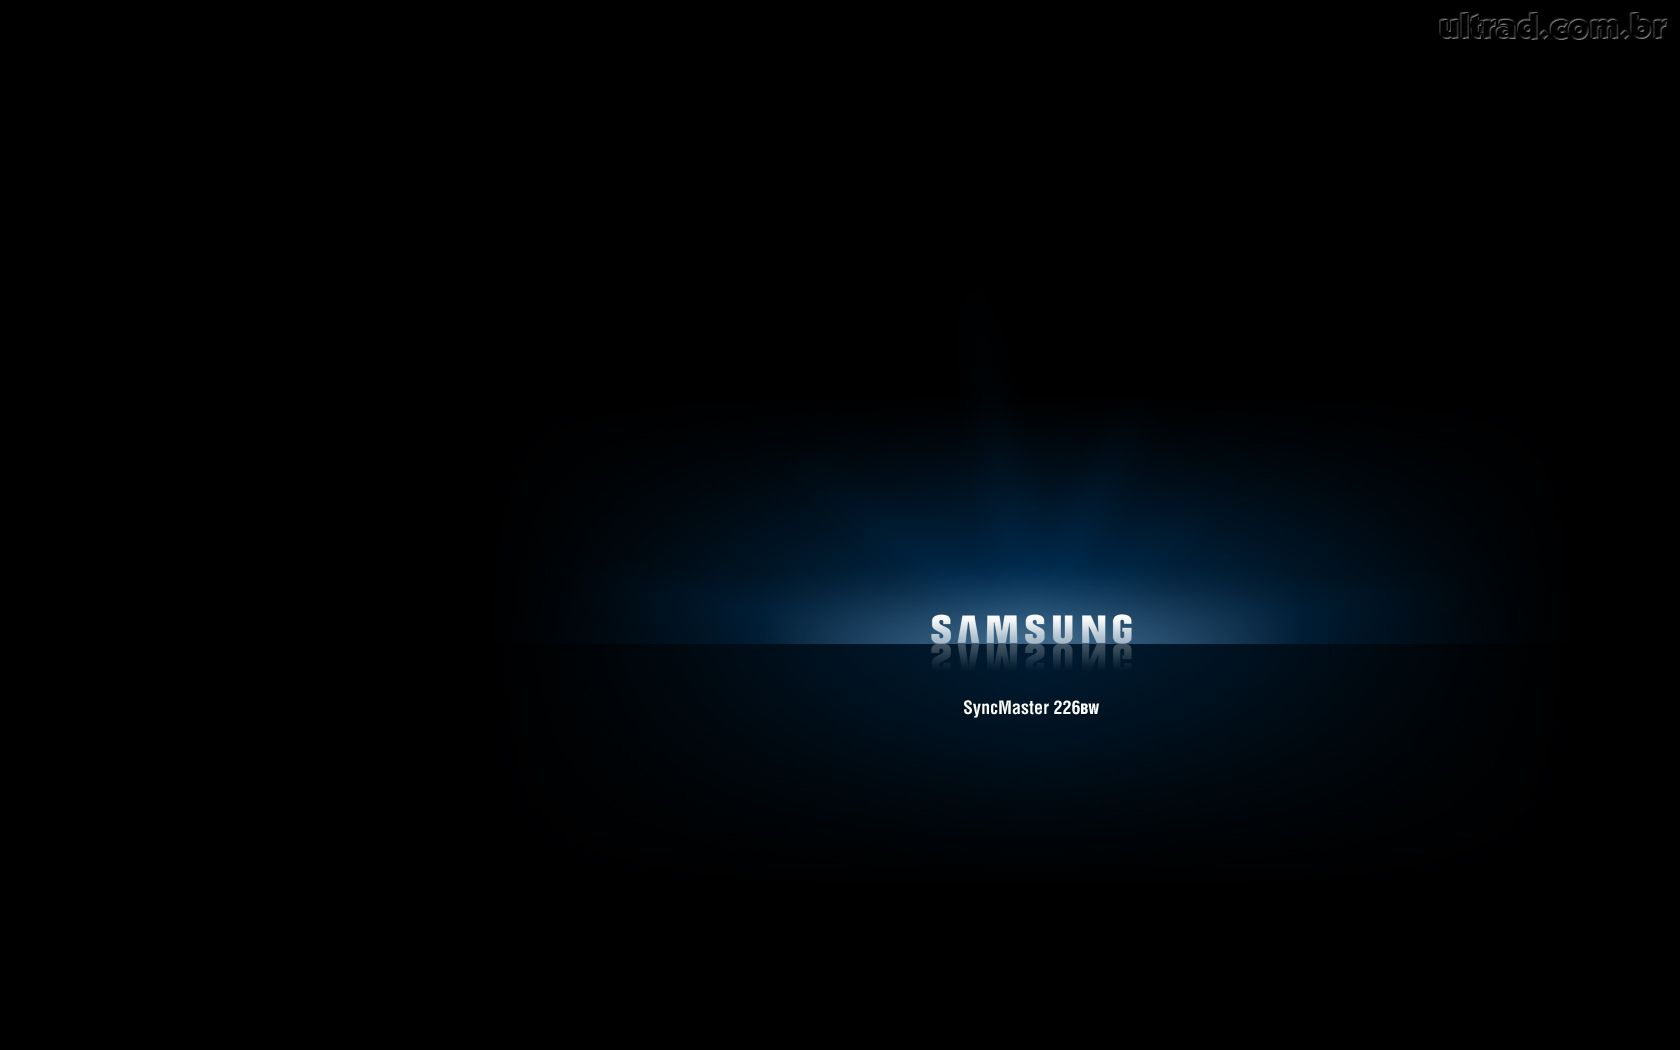 Samsung Wallpapers HD 1680x1050